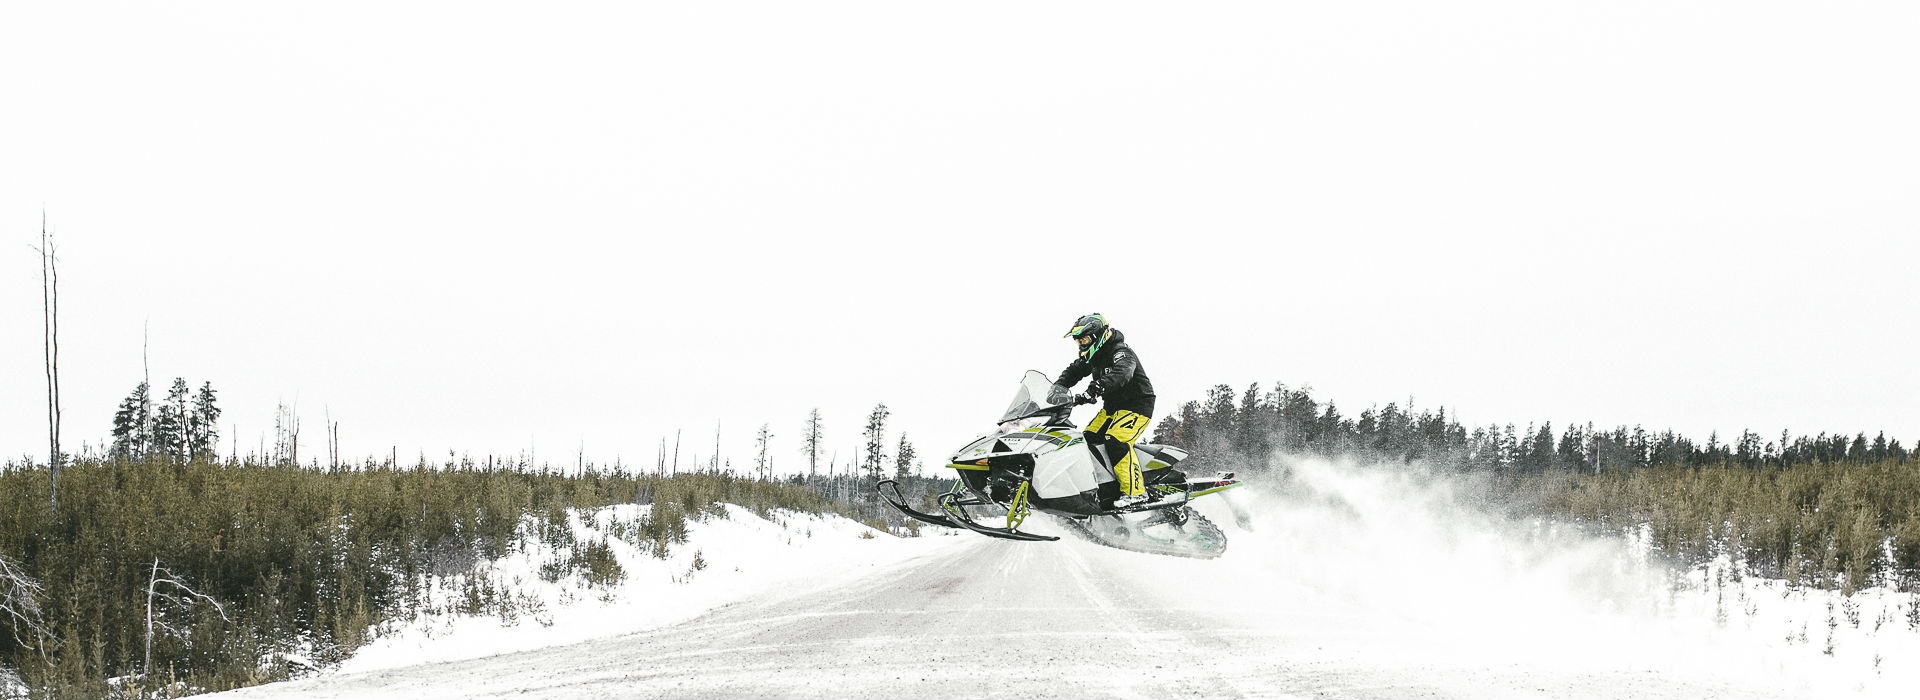 WINTERS HERE LETS RIDE